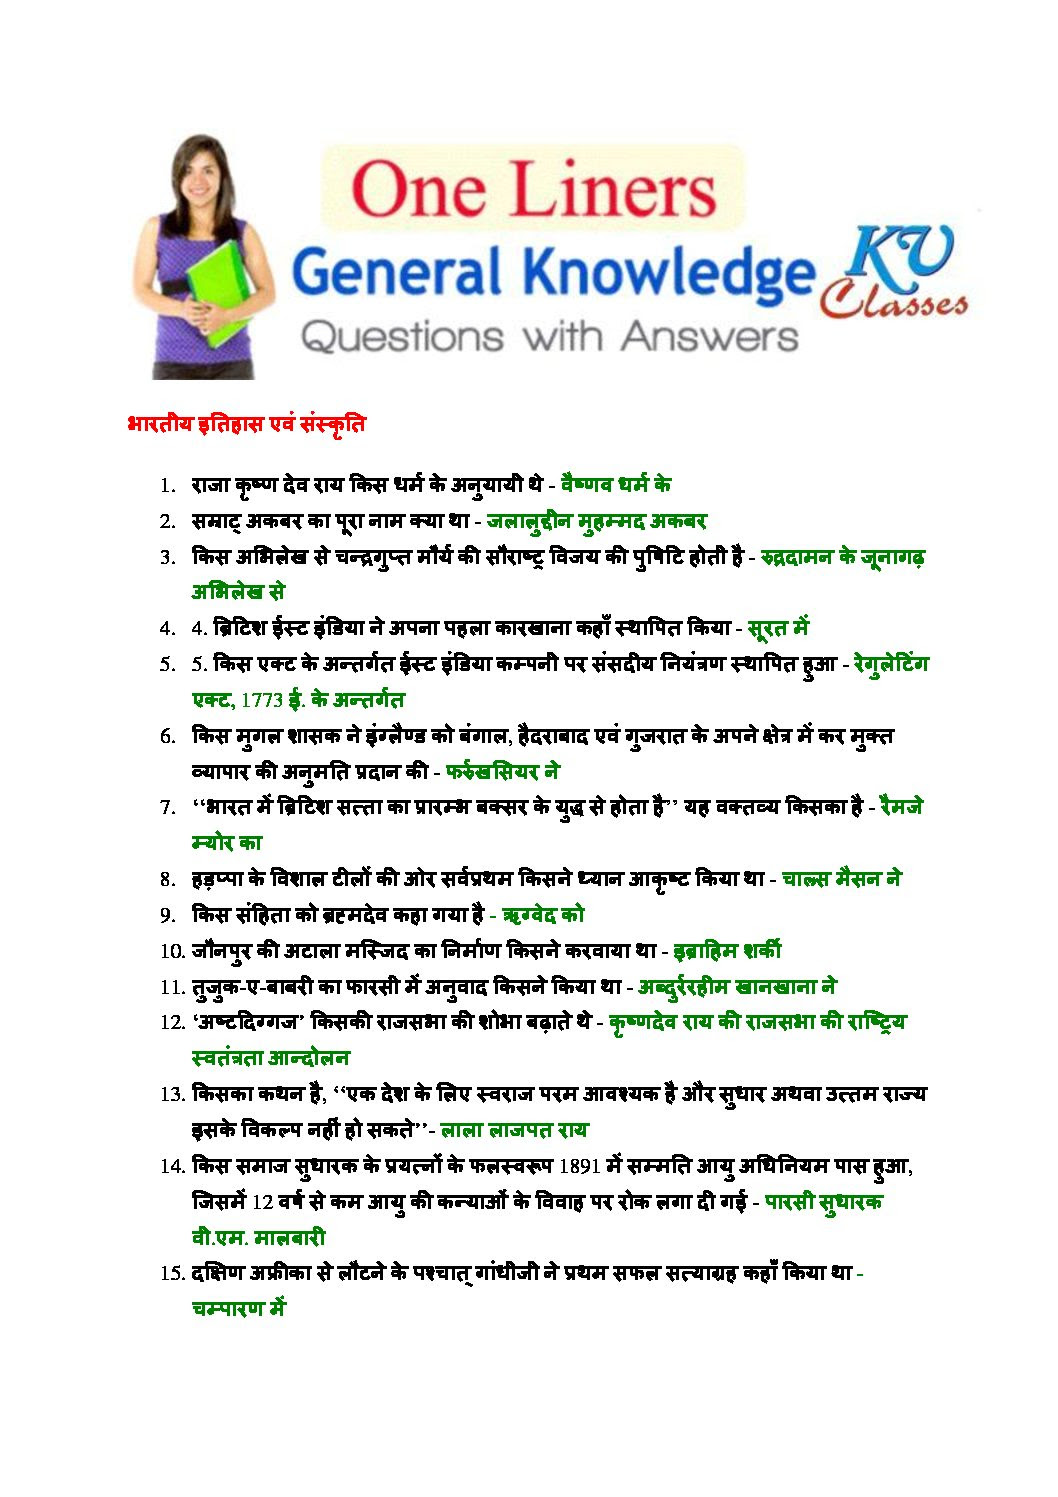 General Knowledge Quiz 2018 With Answers - KnowledgeWalls